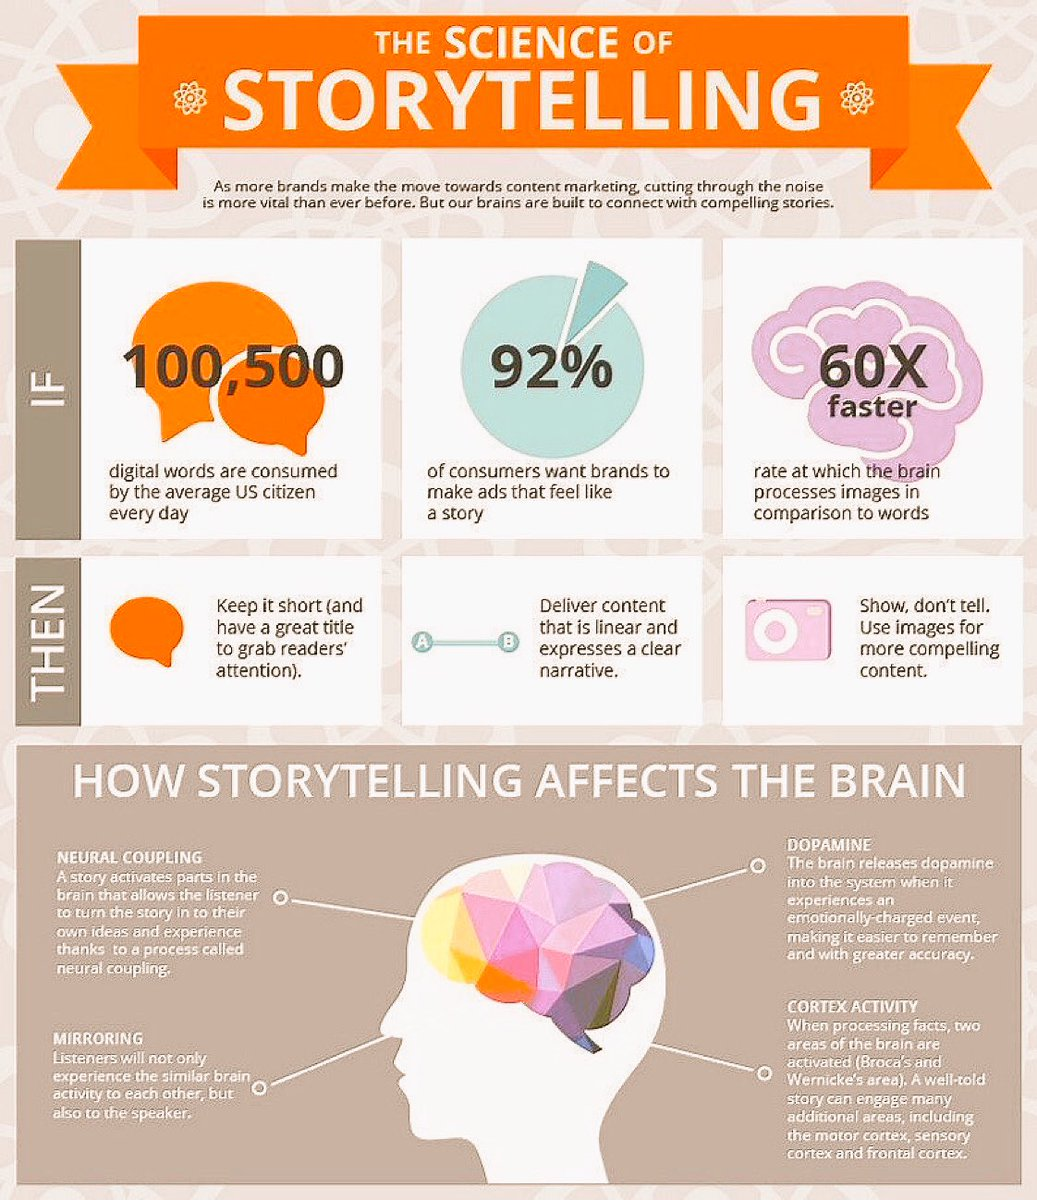 Science of Storytelling #Fintech #makeyourownlane #SEO #Branding #SMM #Mpgvip #Defstar5 #GrowthHacking #Startup #Tech #Digital #IoT<br>http://pic.twitter.com/gj6gIuybeS